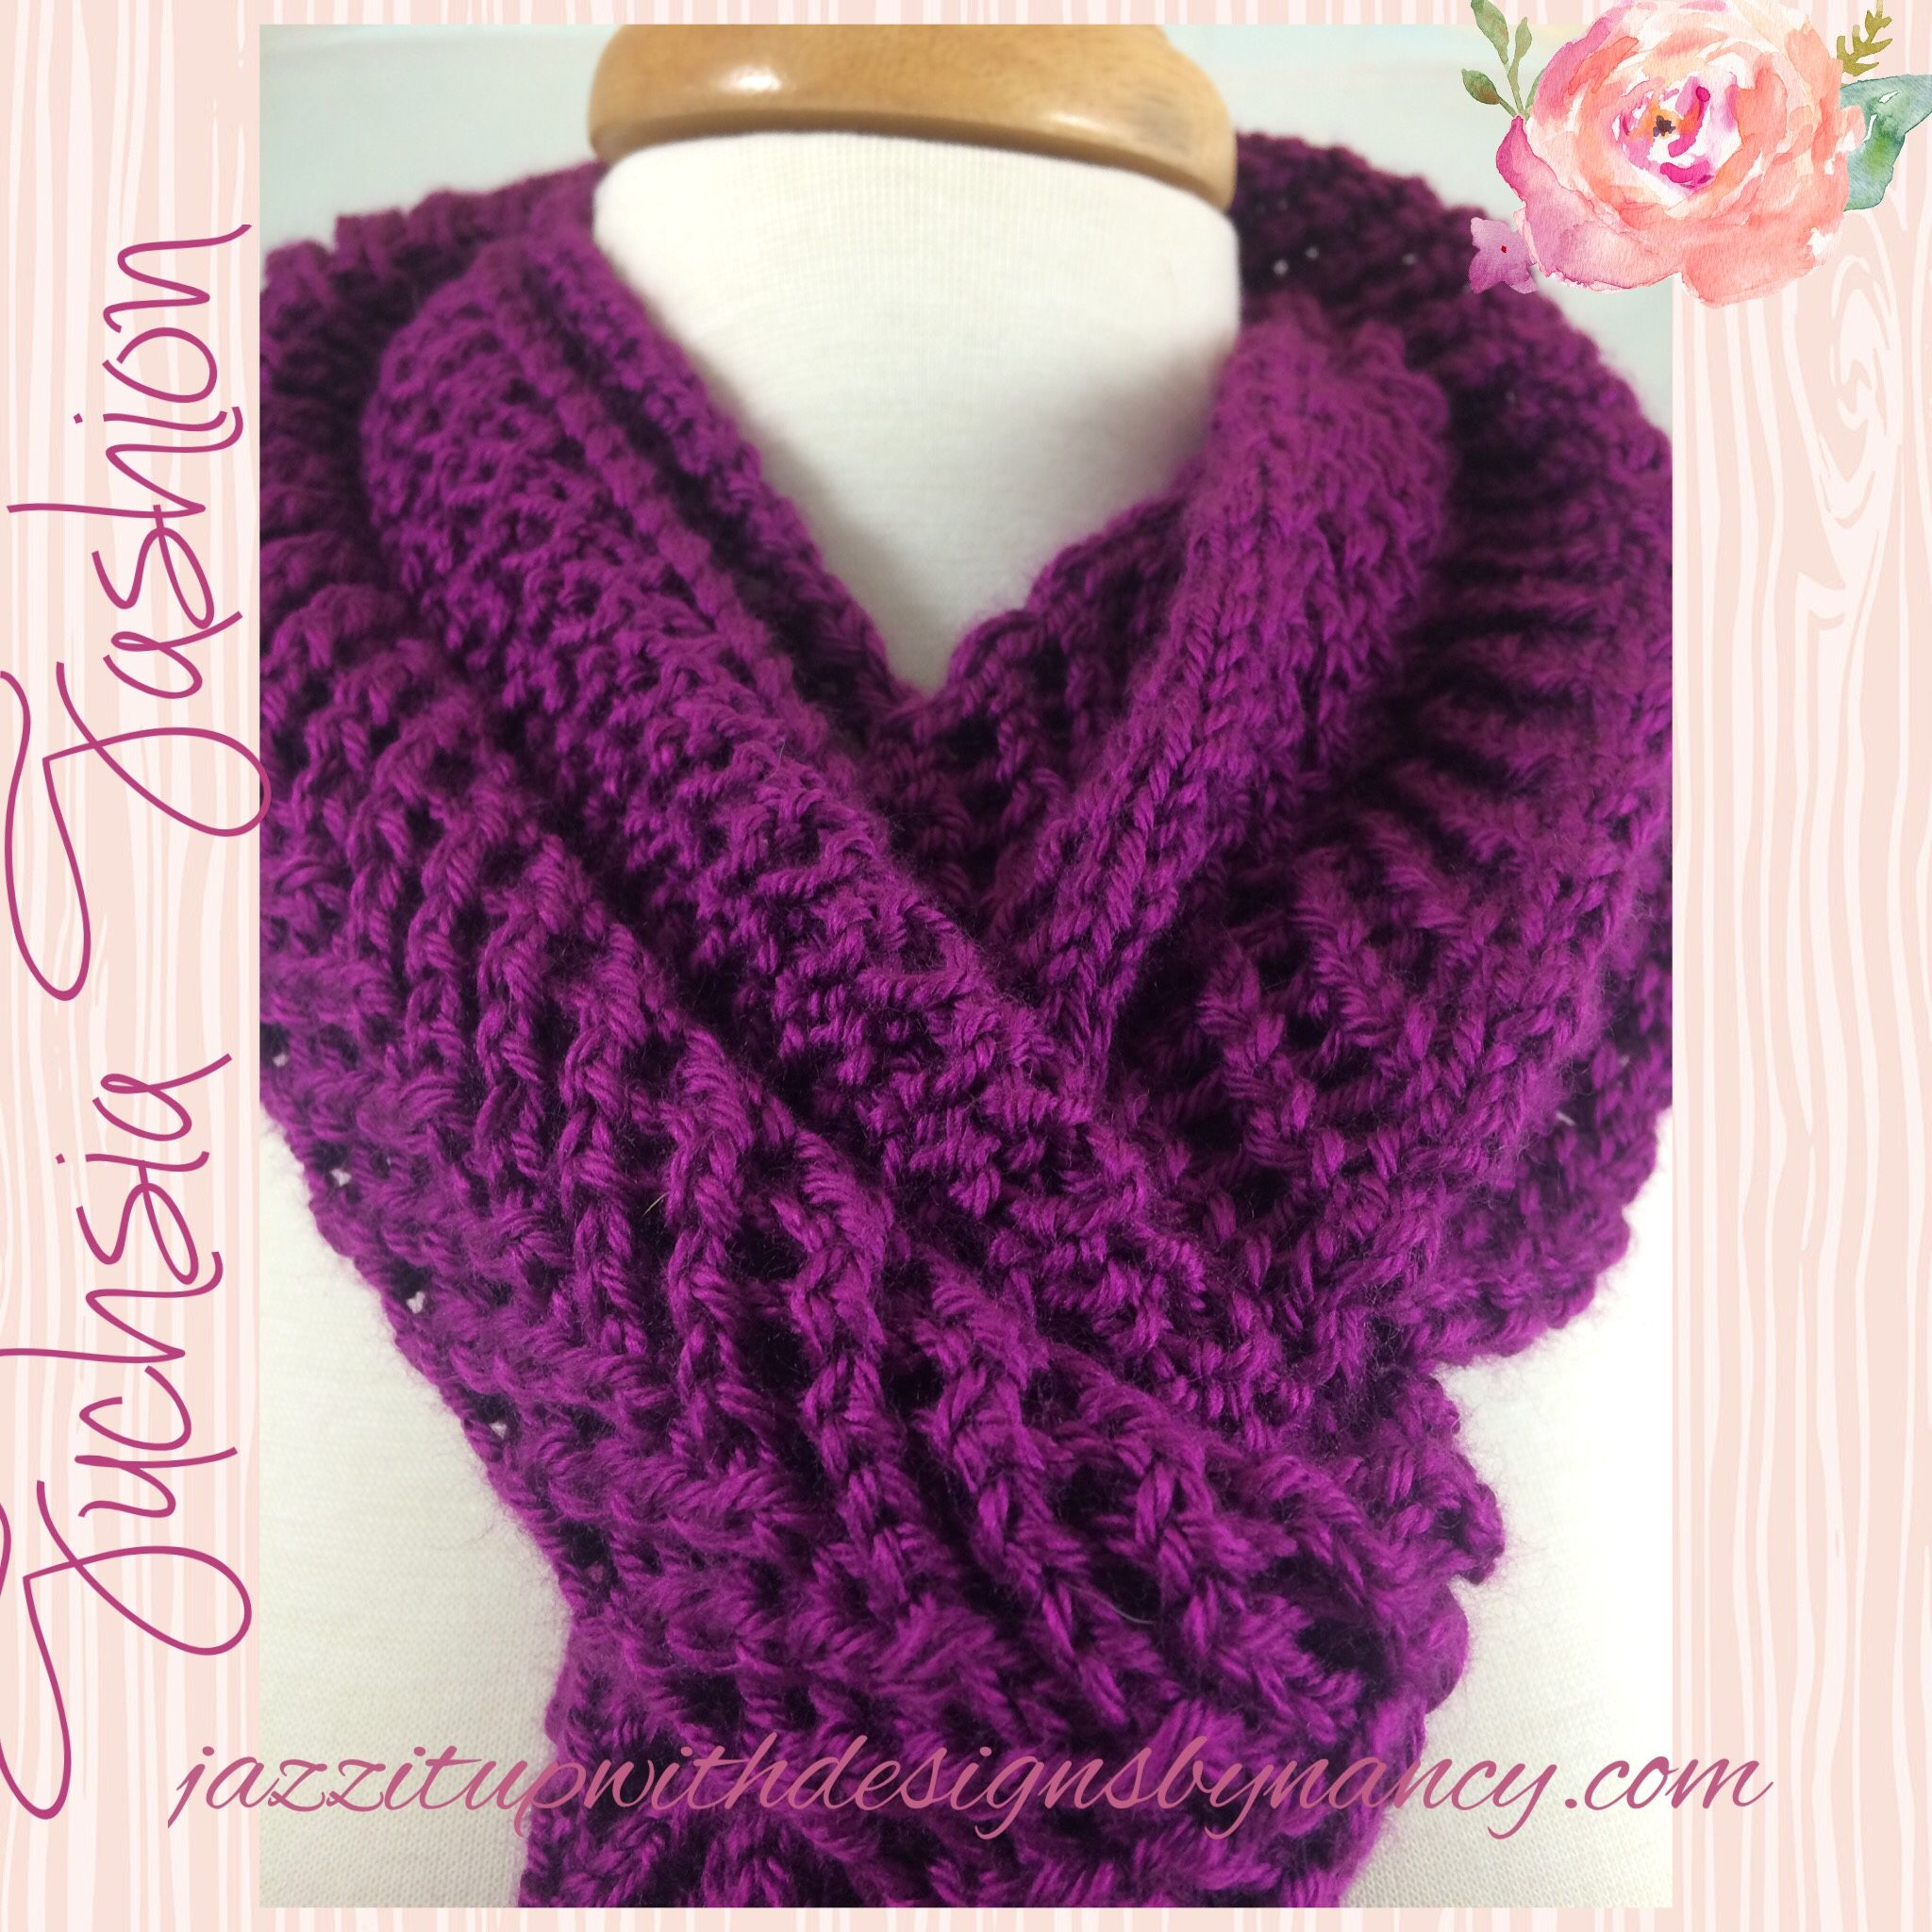 #cpromo Dark Fuchsia Hand knit Scarf Extra Long in lace Arrowhead Pattern Caron Simply Soft yarn